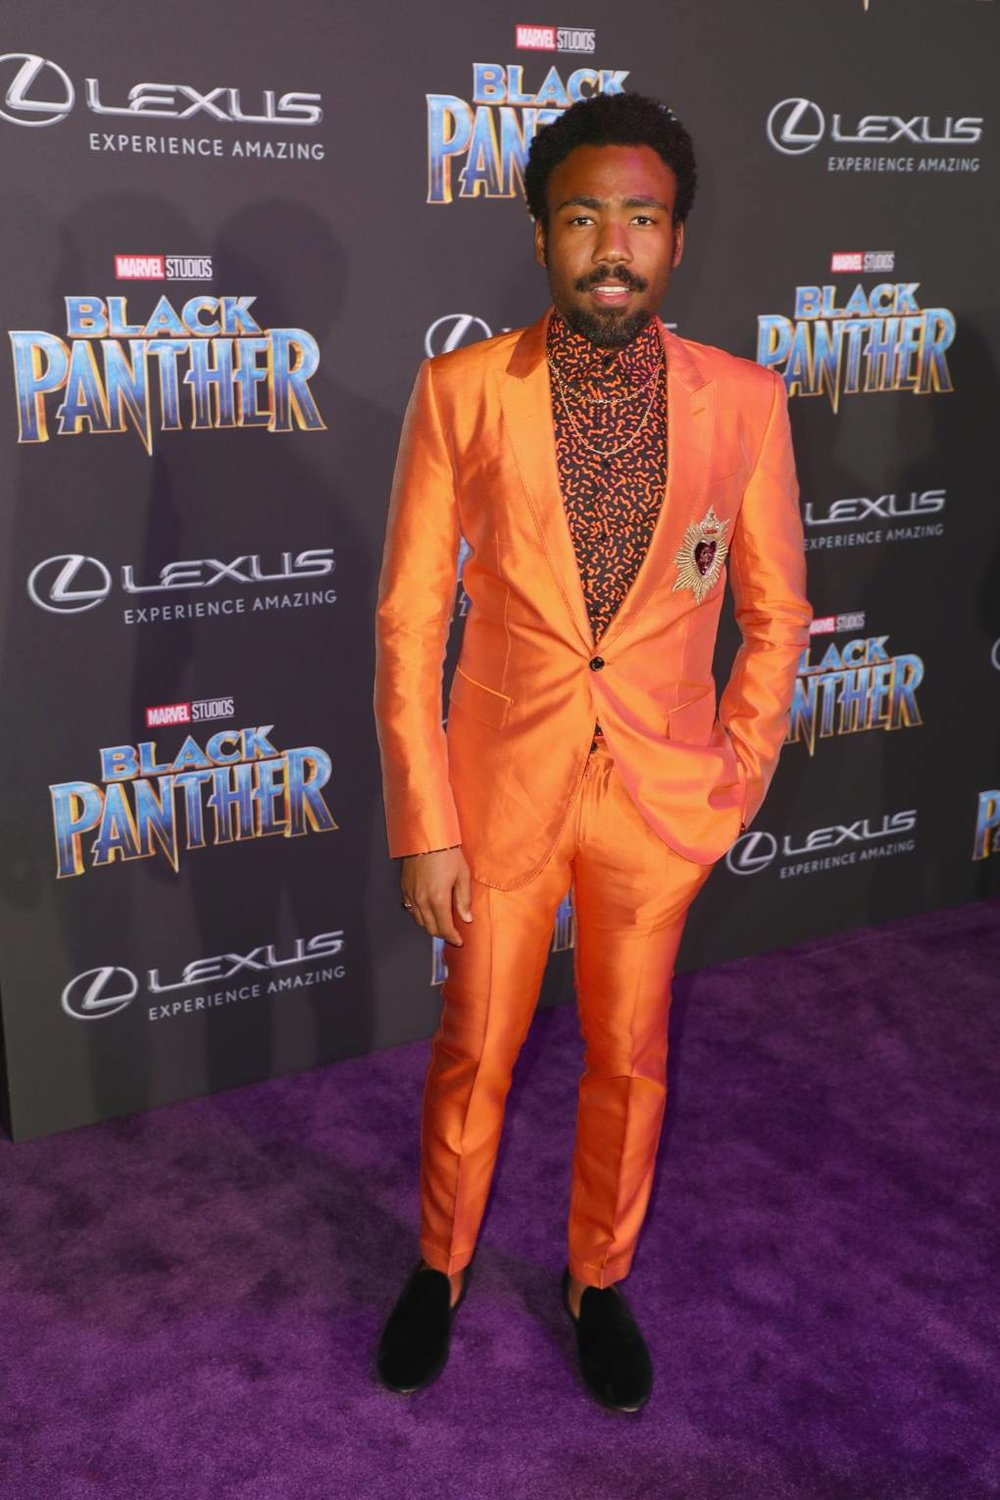 Wearing bright jewel tones at the premiere of 'Black Panther'   Image Credit